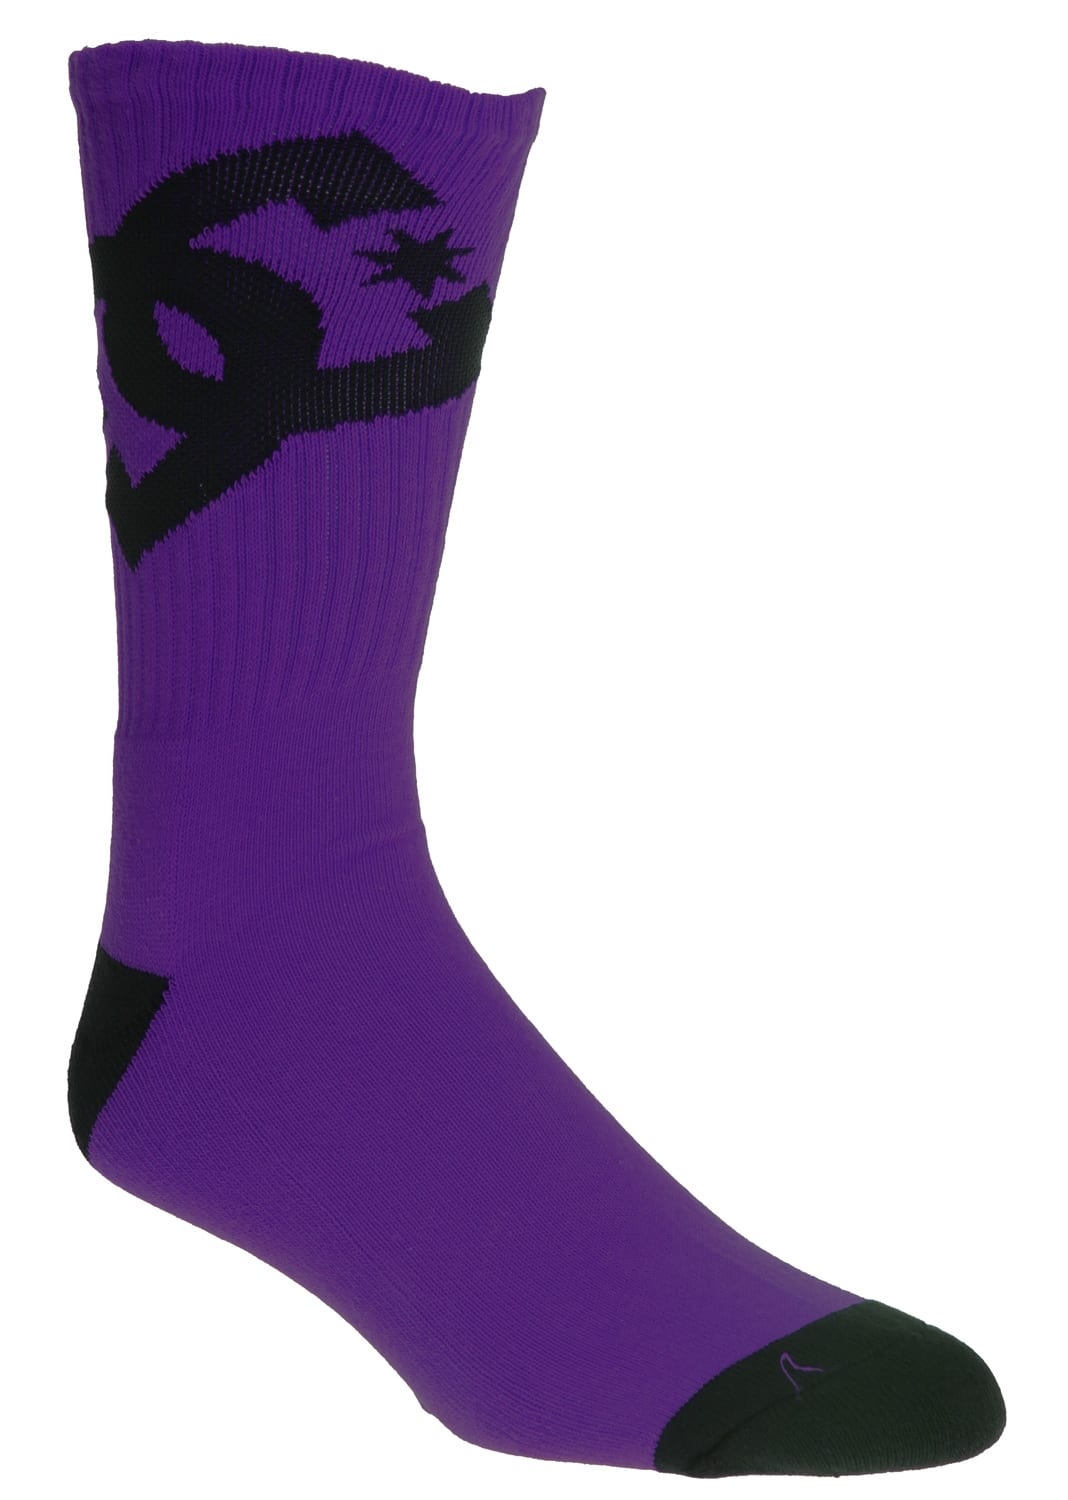 Shop for DC Ya Brah 5 Socks Heliotrope - Men's